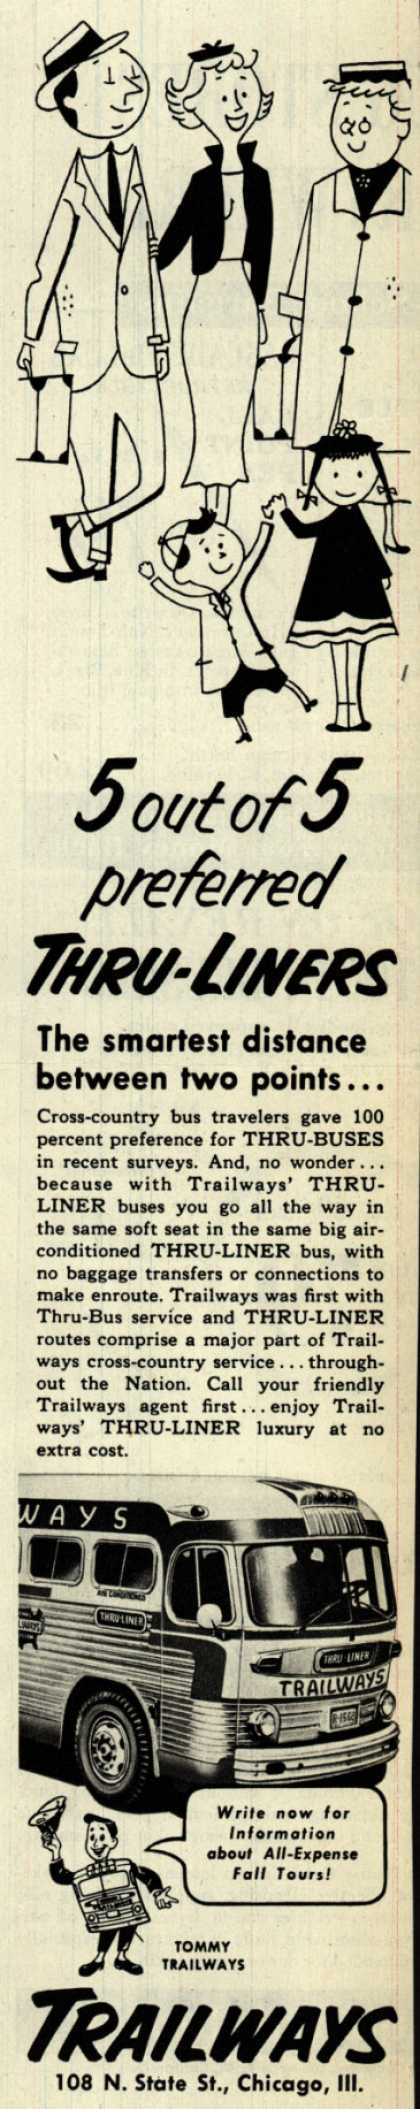 National Trailways Bus System's Thru-Liners – 5 out of 5 preferred Thru-Liners (1953)